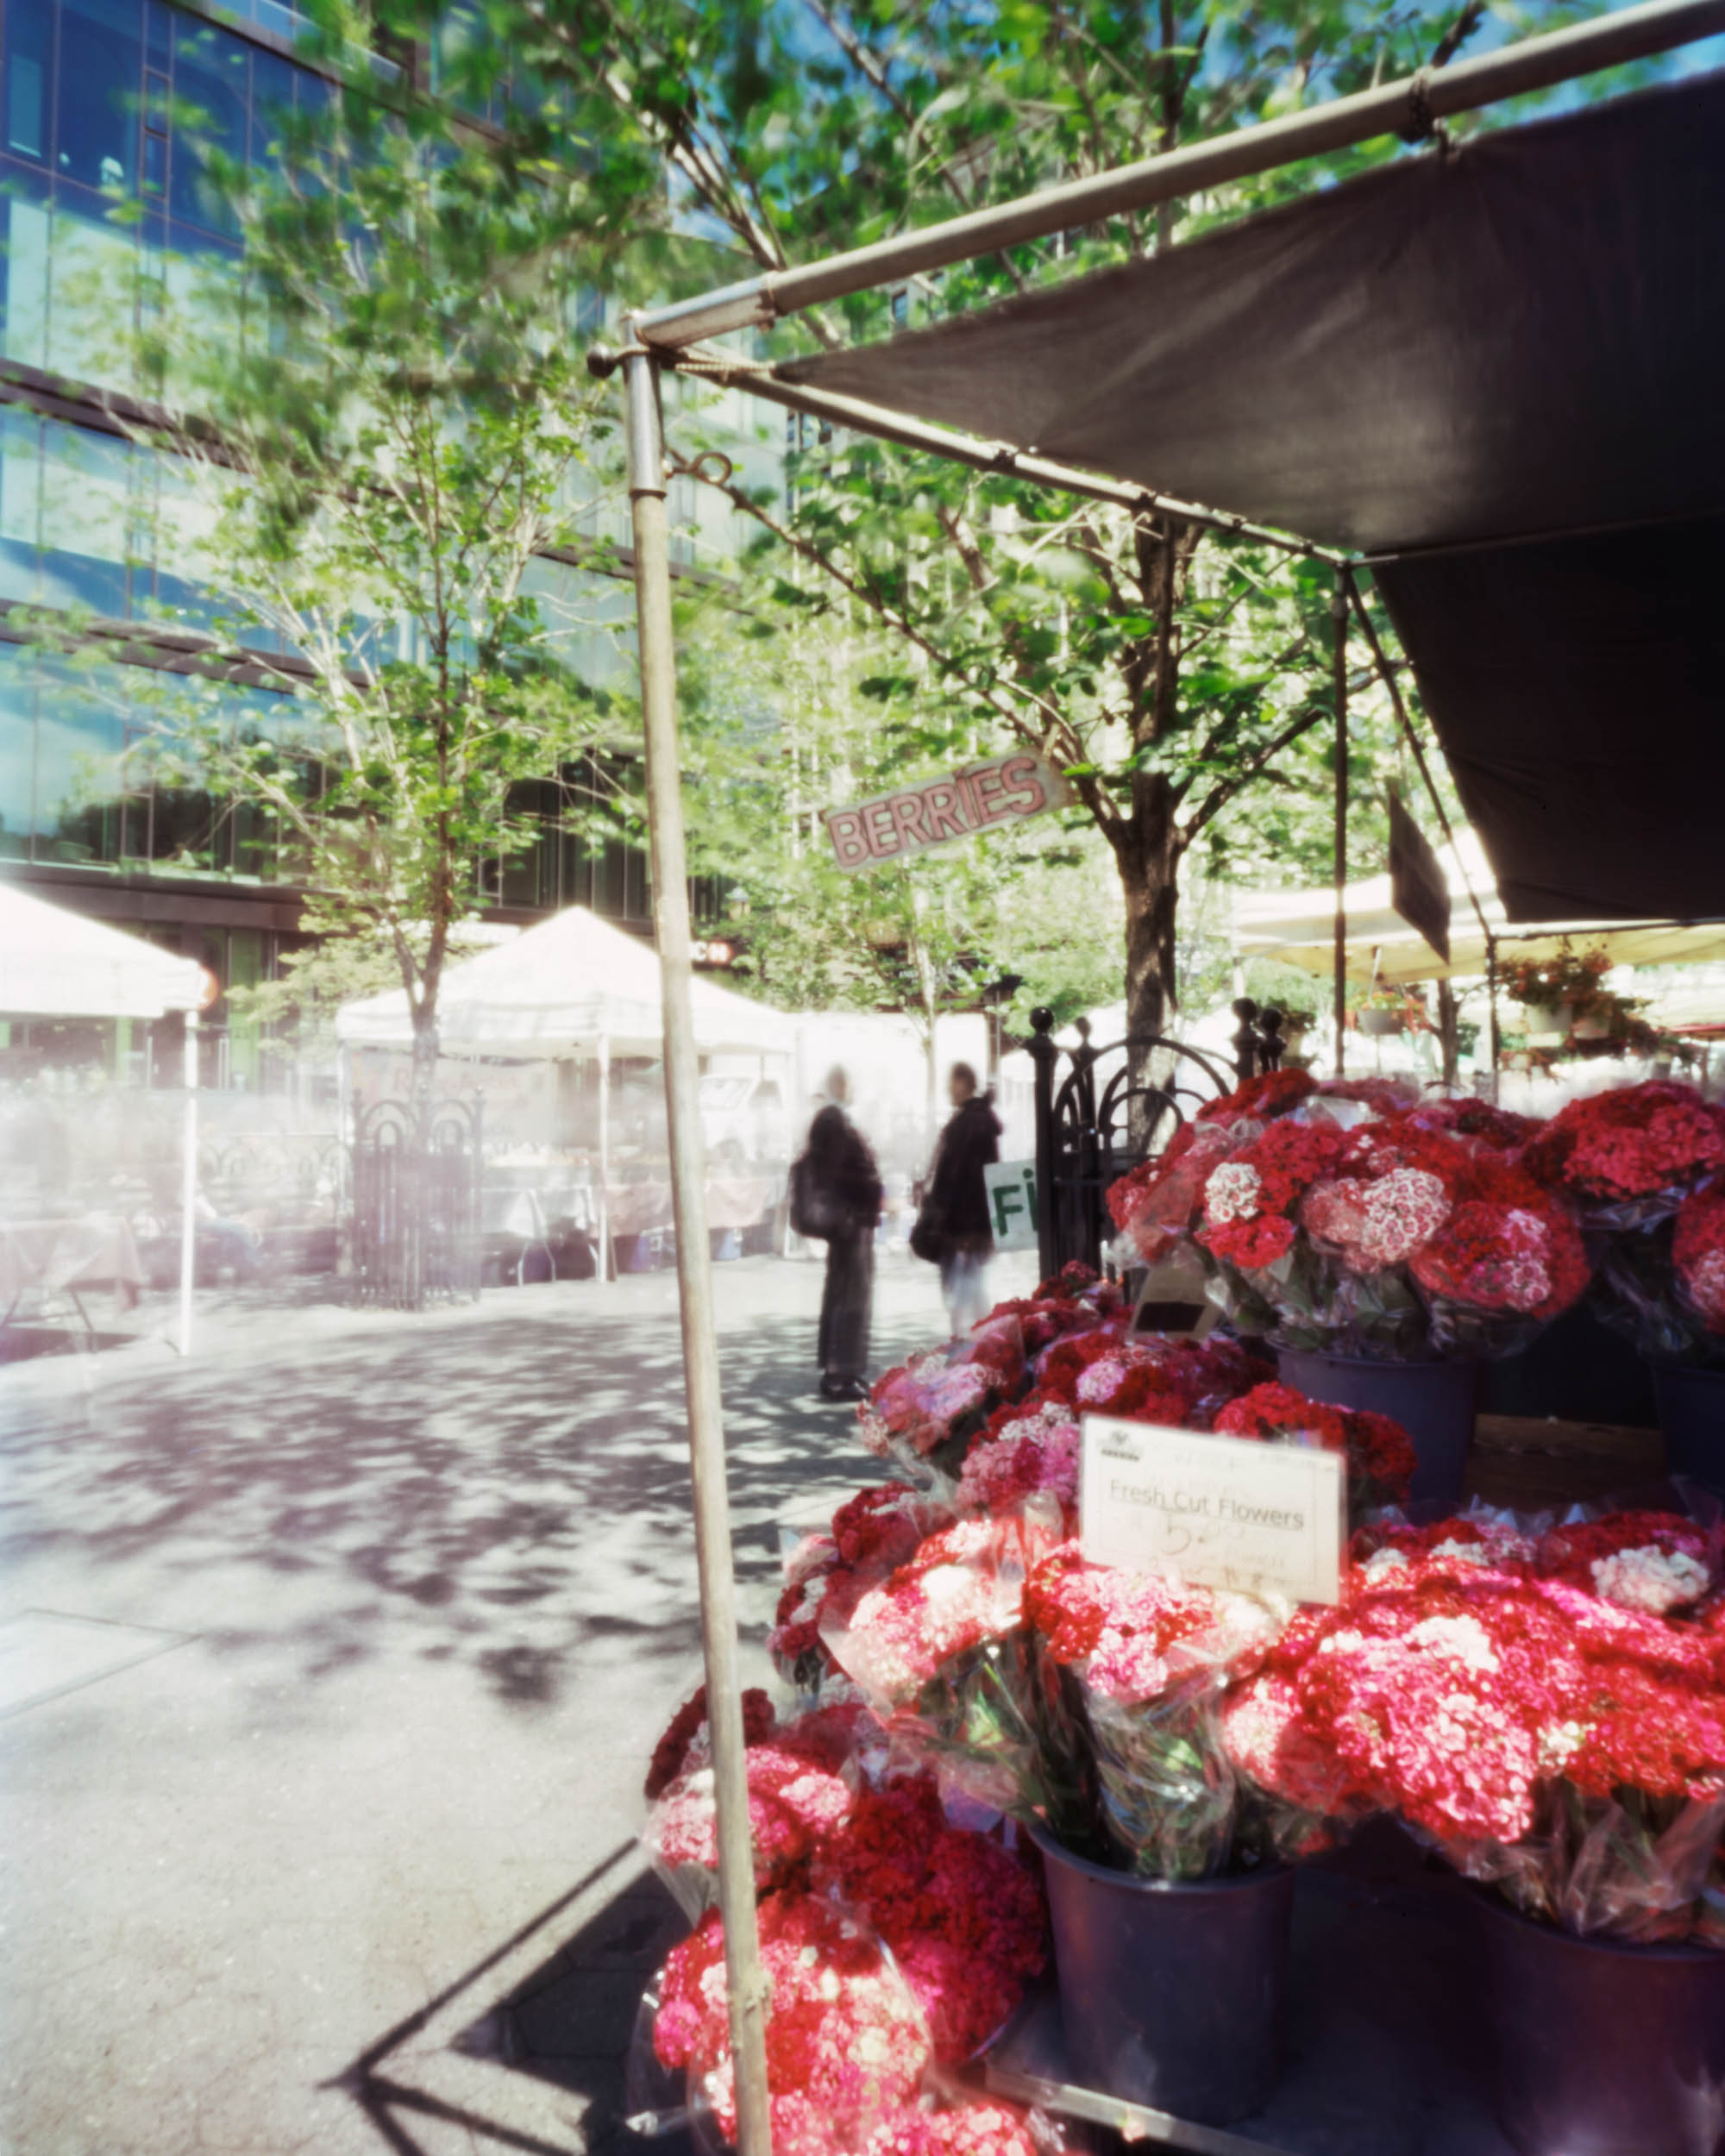 Marasco_Union_Square_market.jpg